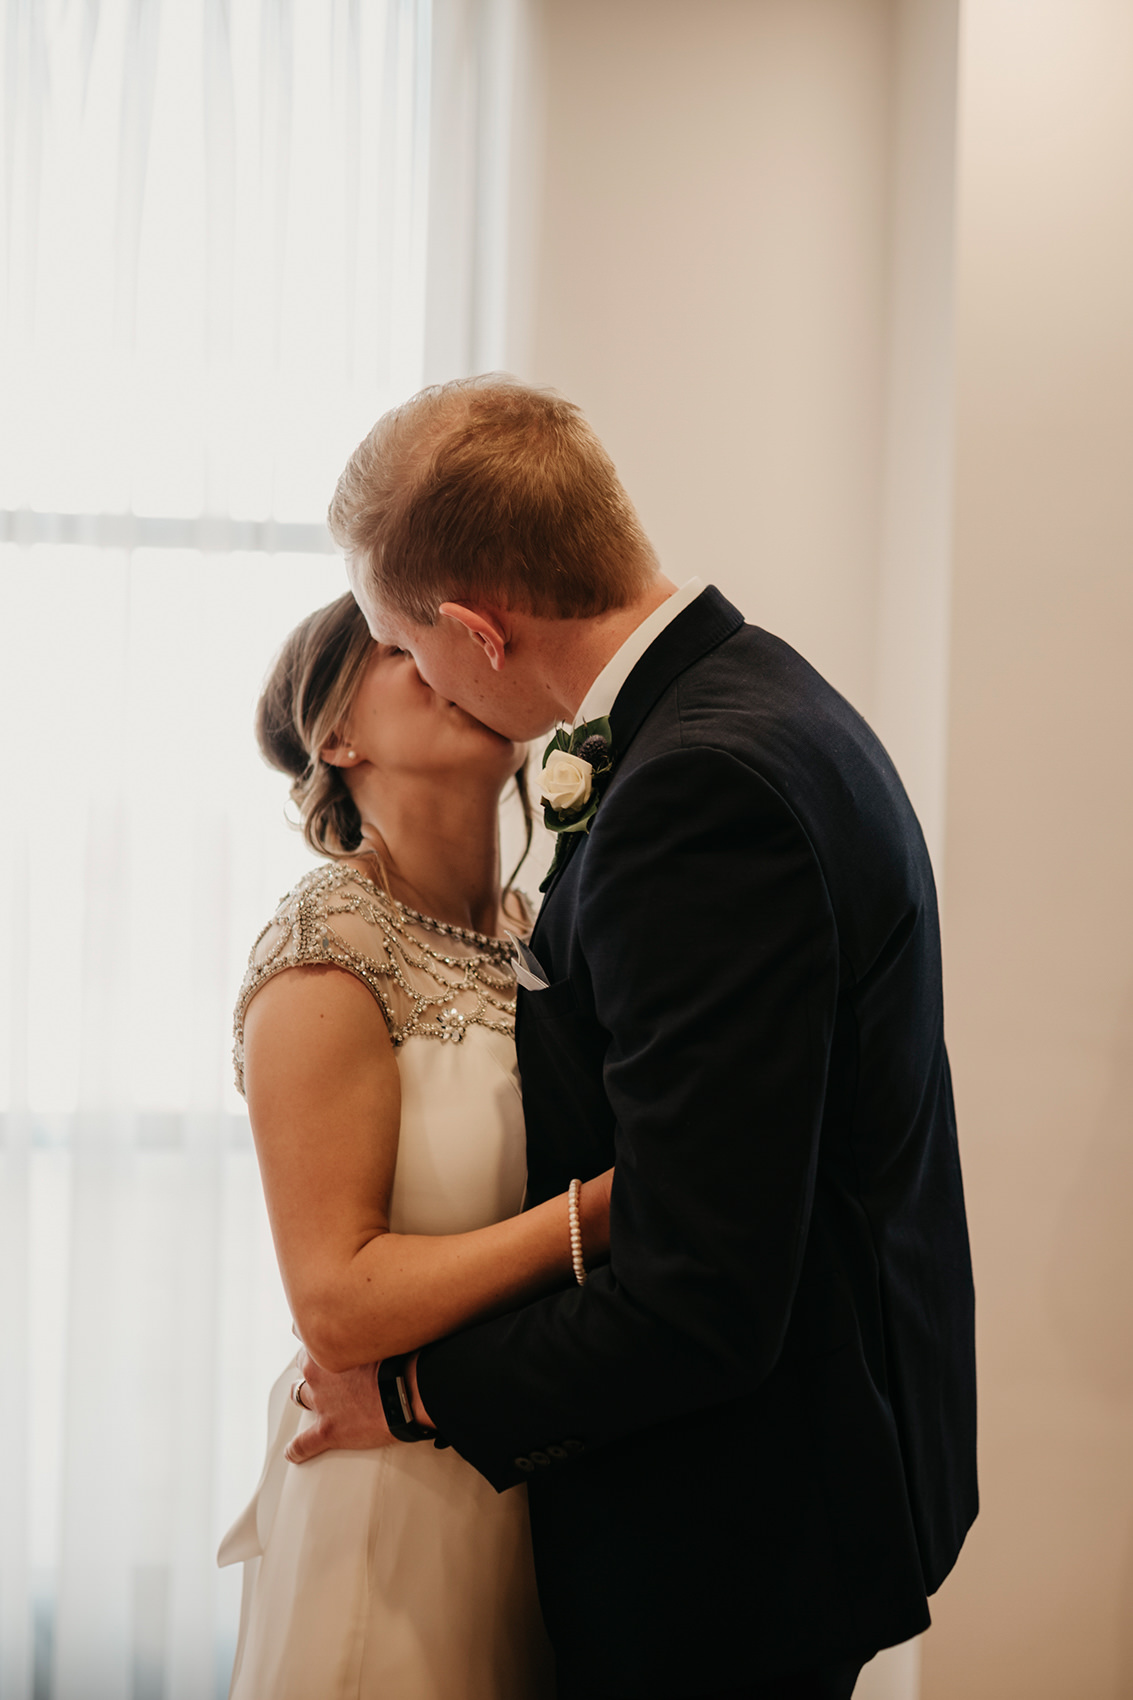 Louise and Ross's first kiss as a married couple